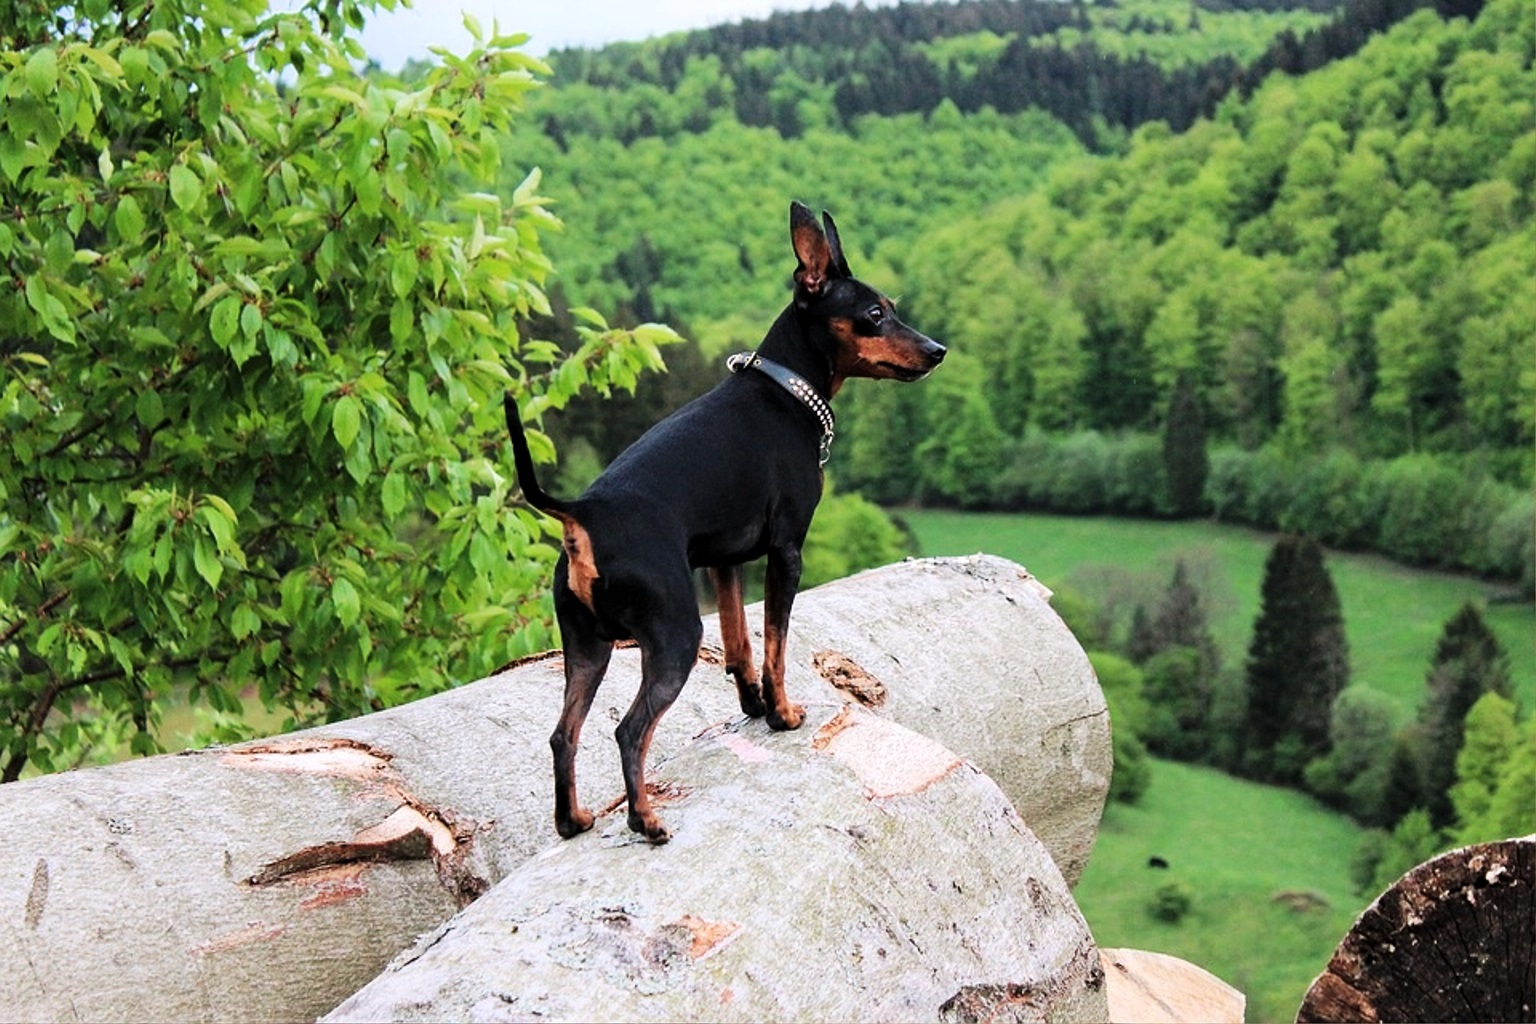 Miniature Pinscher or Zwergpinscher dog breed